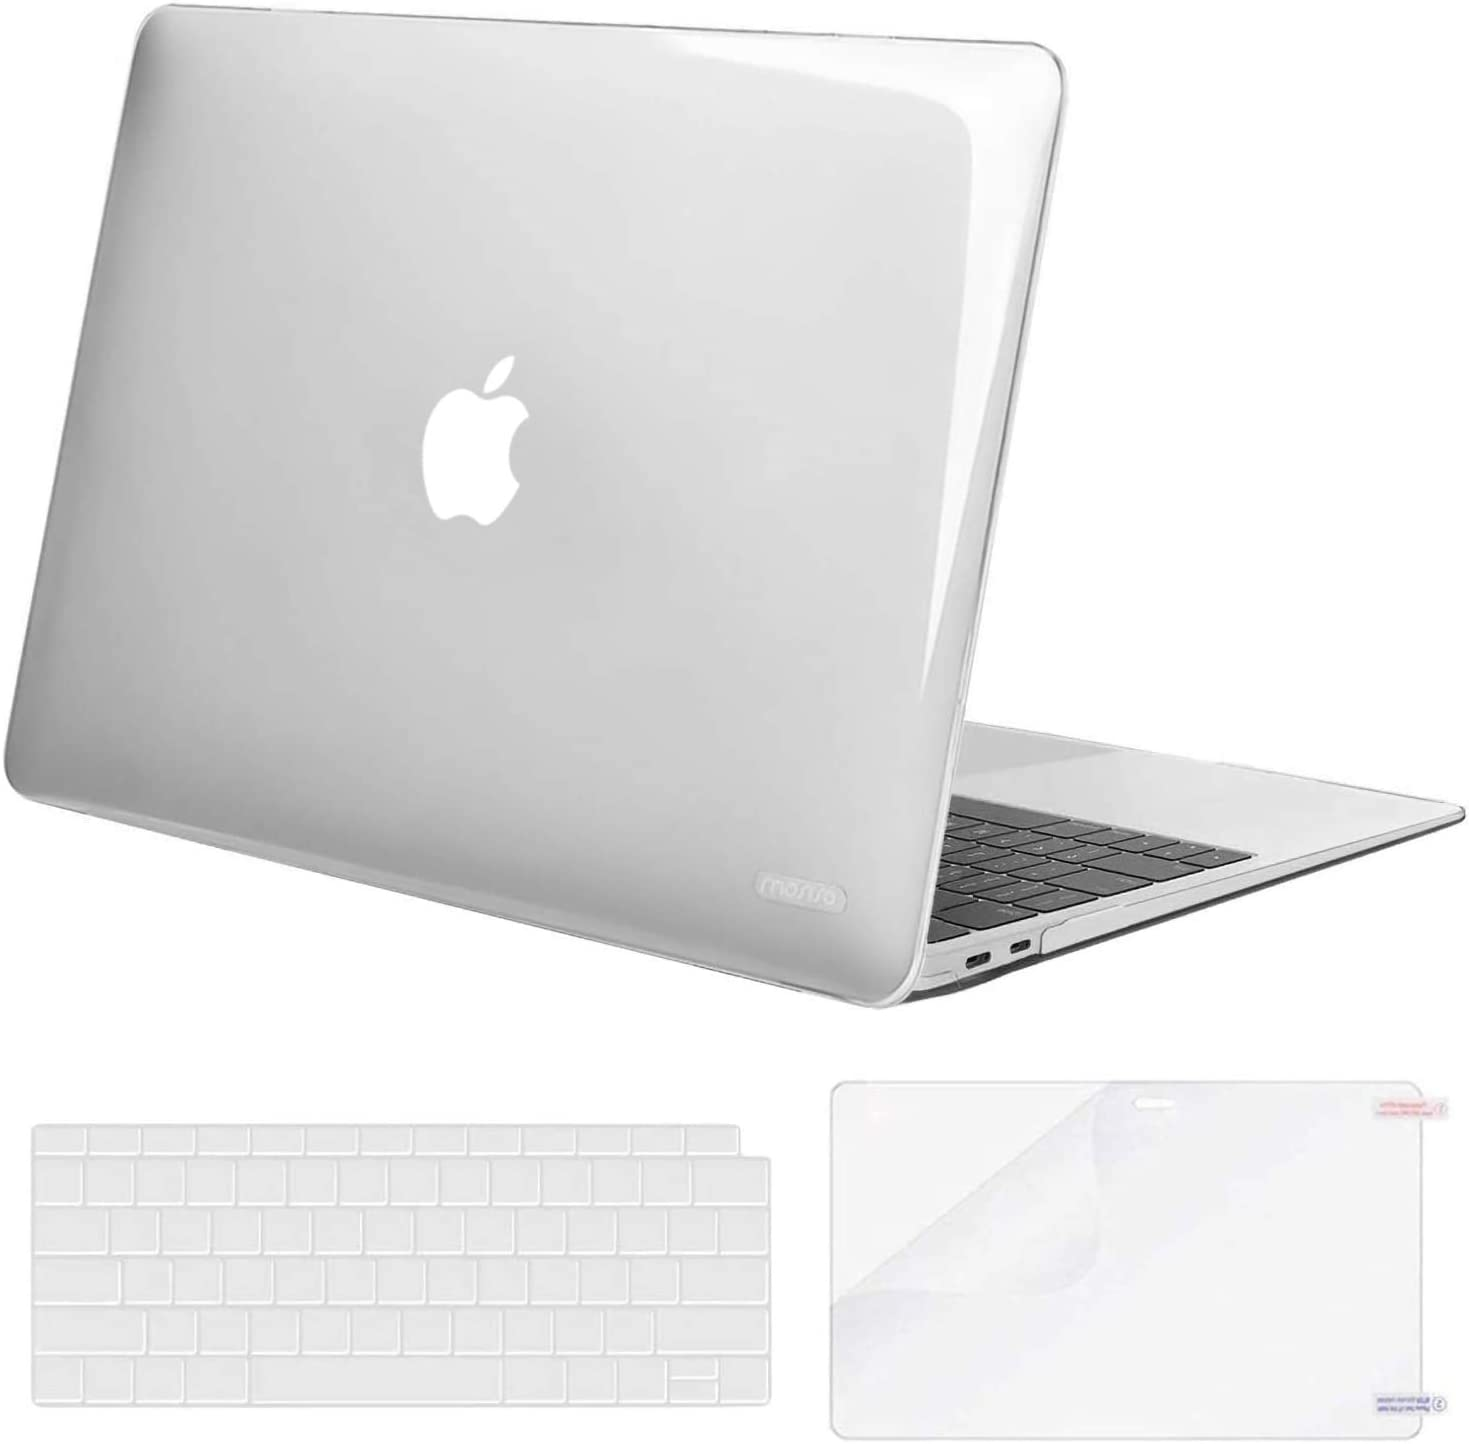 MOSISO MacBook Air 13 inch Case 2020 2019 2018 Release A2179 A1932, Corner Protective Plastic Hard Shell&Keyboard Cover&Screen Protector Compatible with MacBook Air 13 inch Retina Display, Transparent